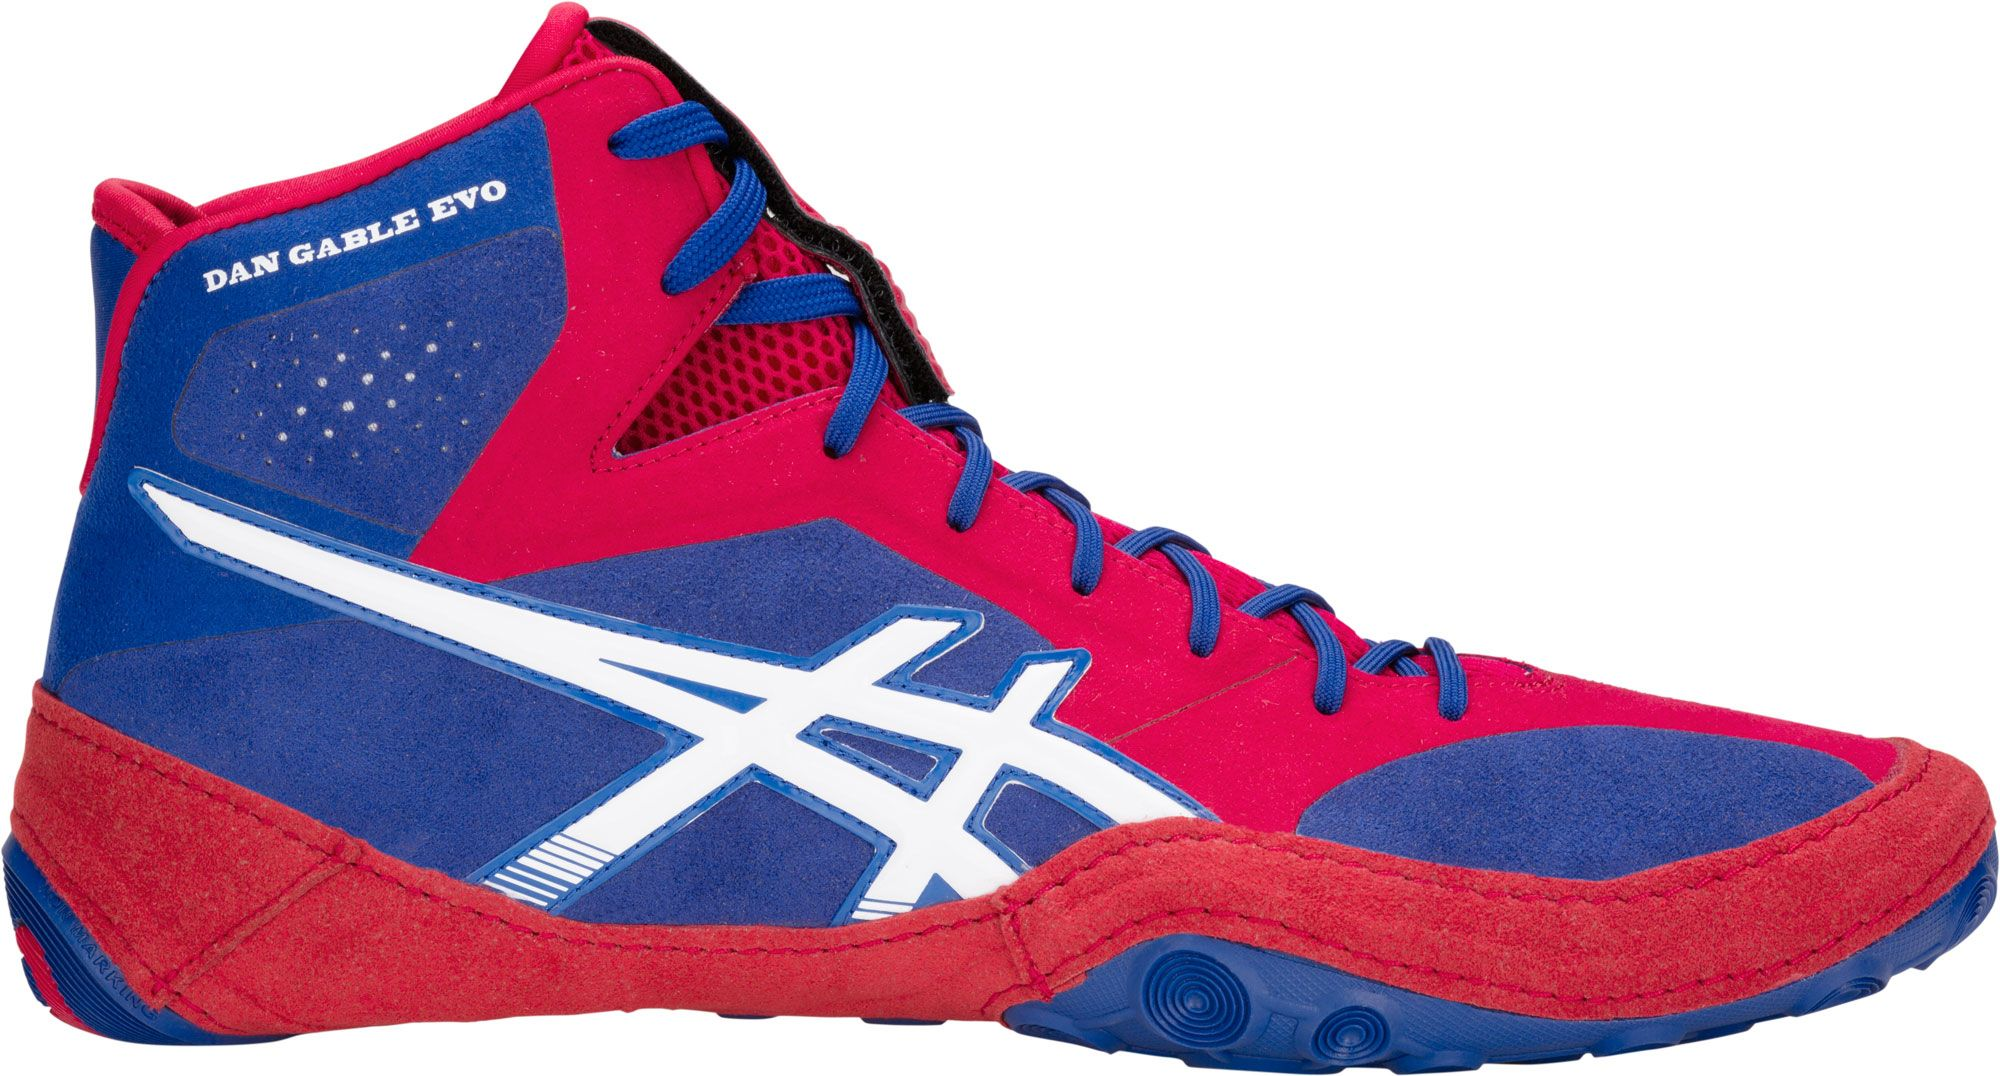 asics wrestling shoe laces queen